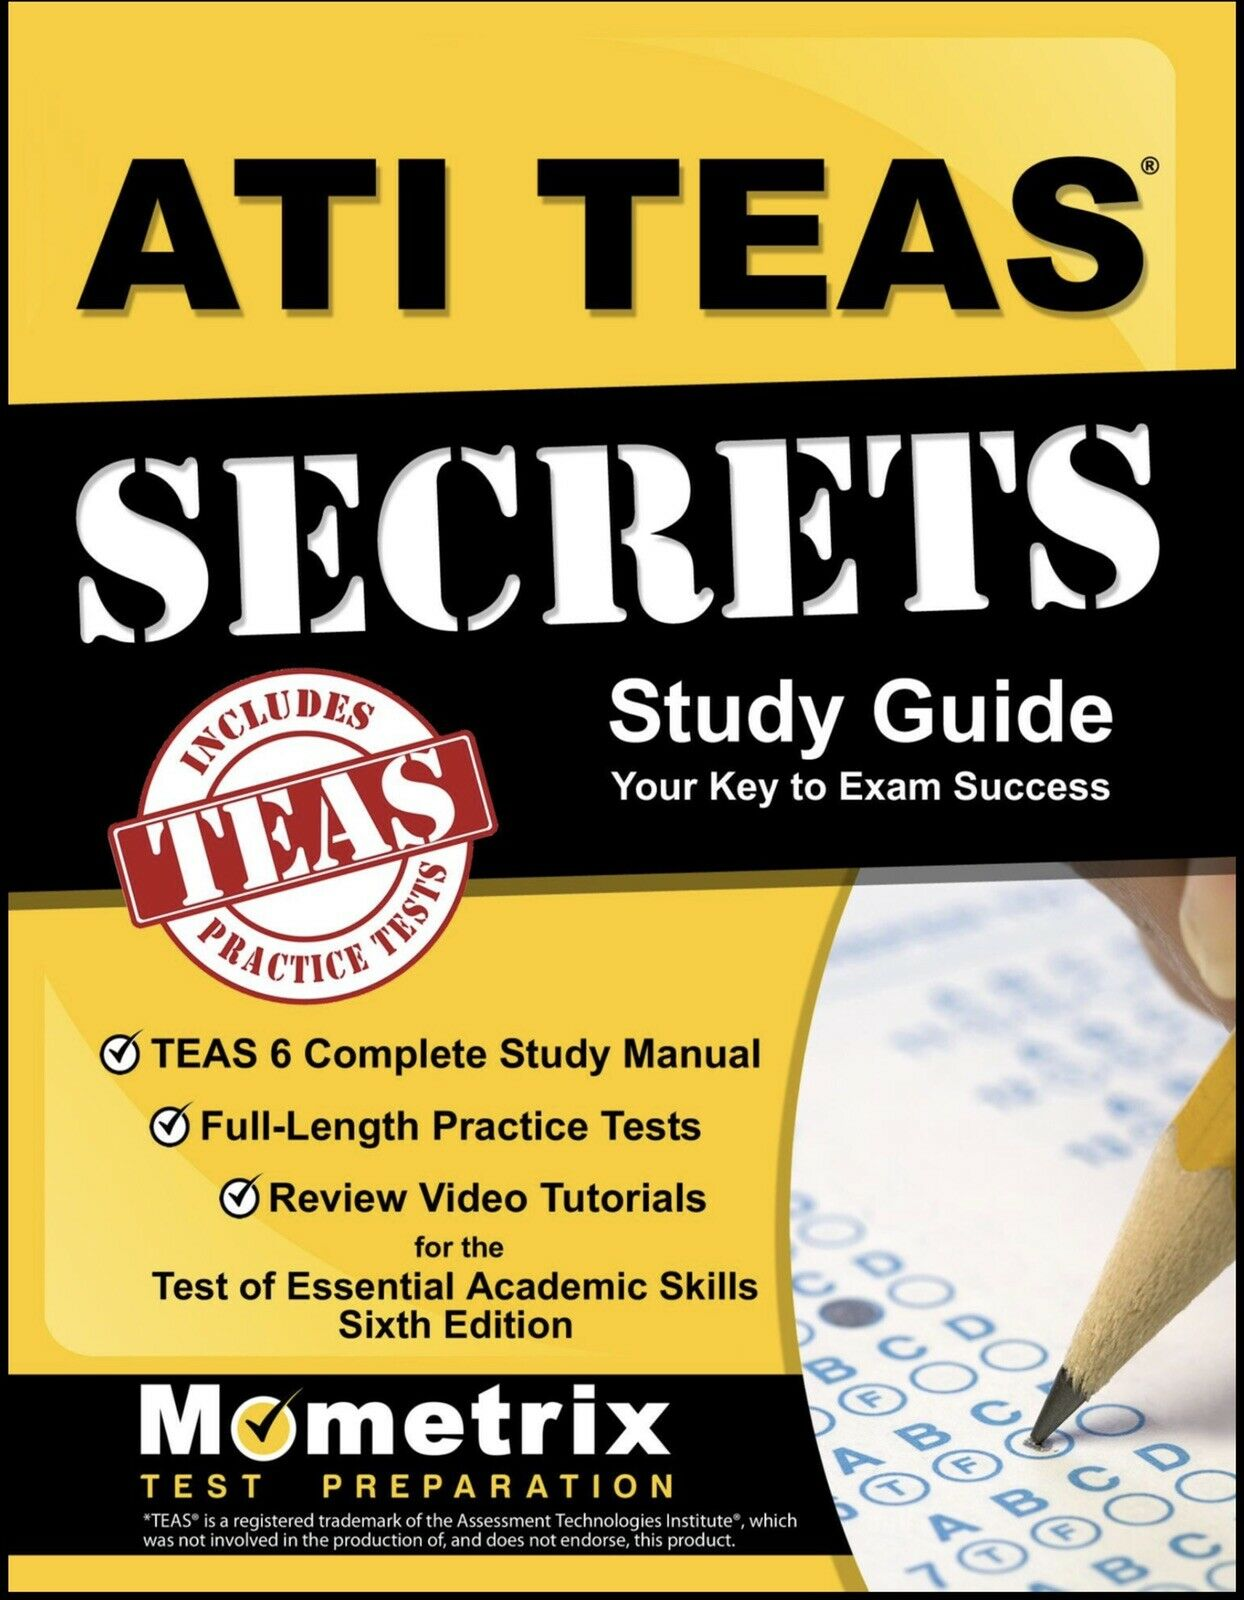 ATI Teas Mometrix: Secret Study Guide 2